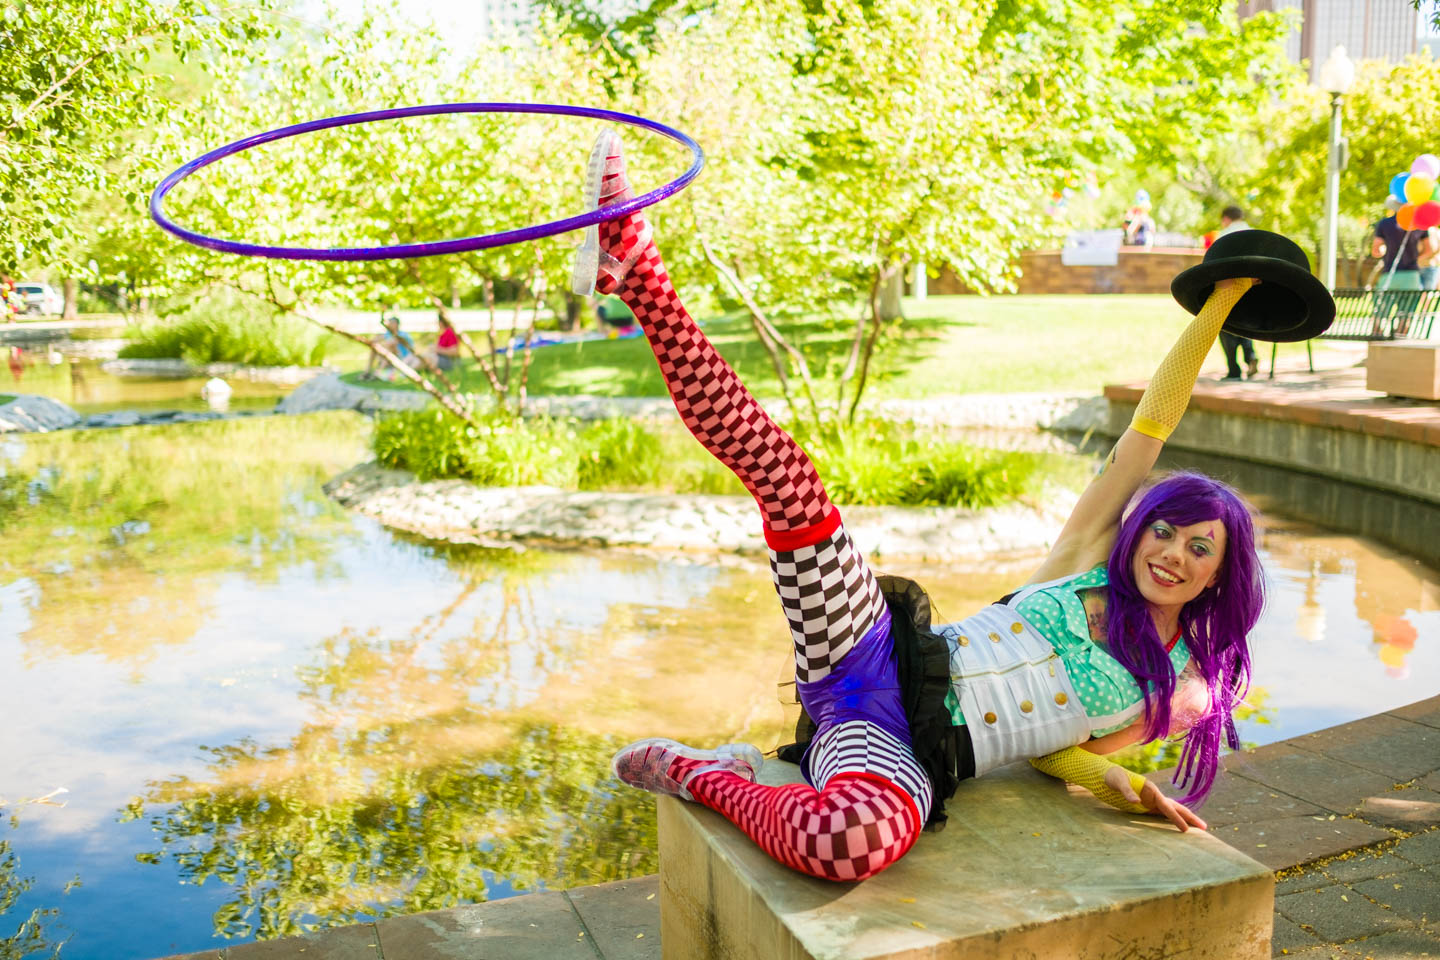 Hula hoop performer at City Creek Park